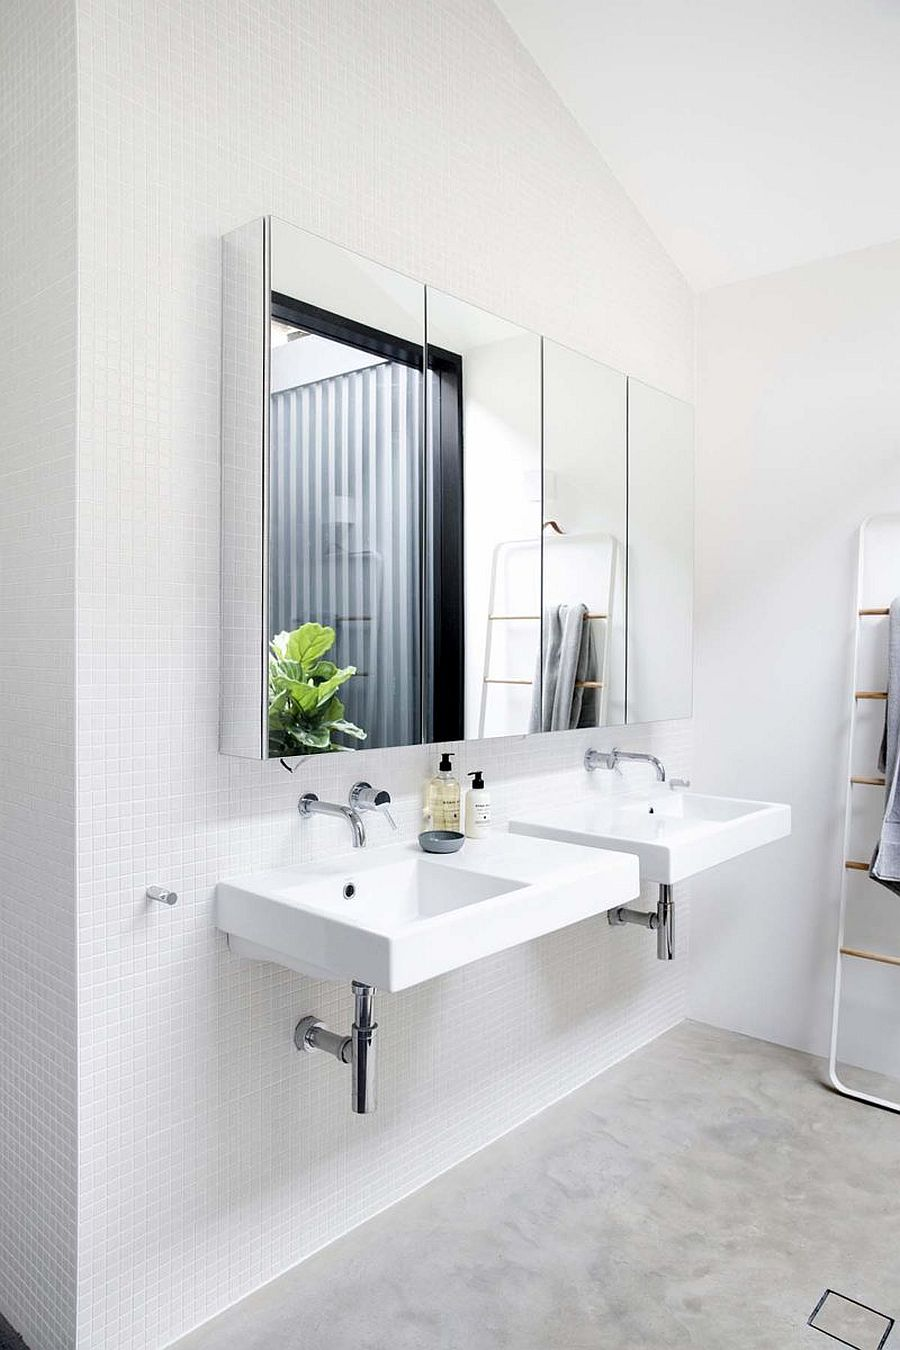 Create-a-more-relaxing-bathroom-with-walls-in-monochromatic-white-95459